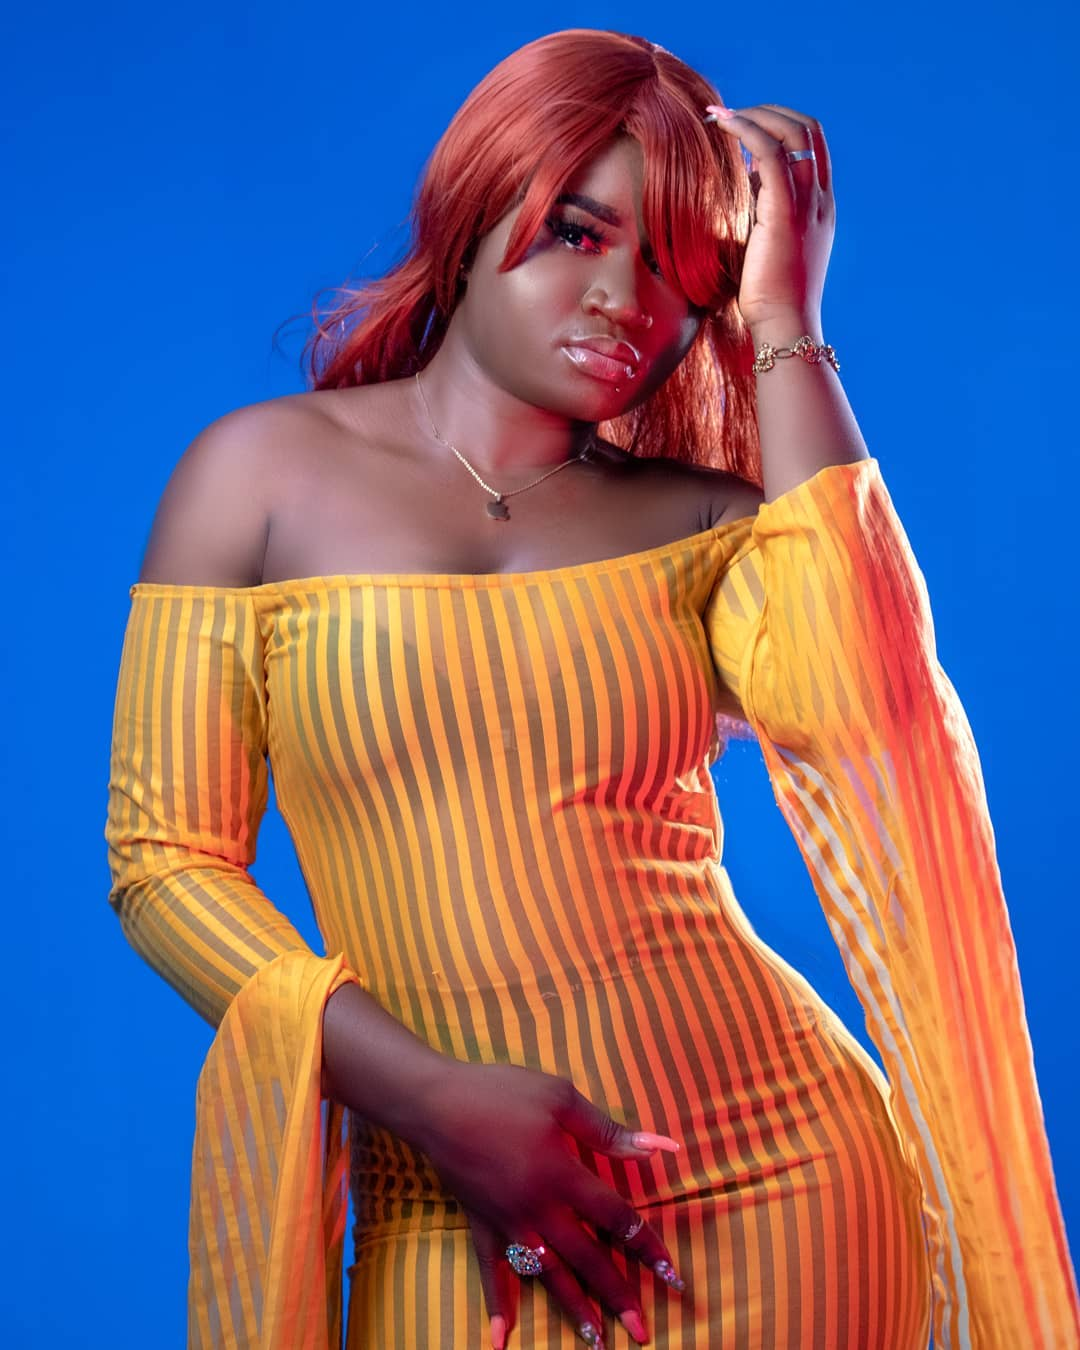 Top 10 Upcoming Cameroonian artists to watch in 2021 - Liya